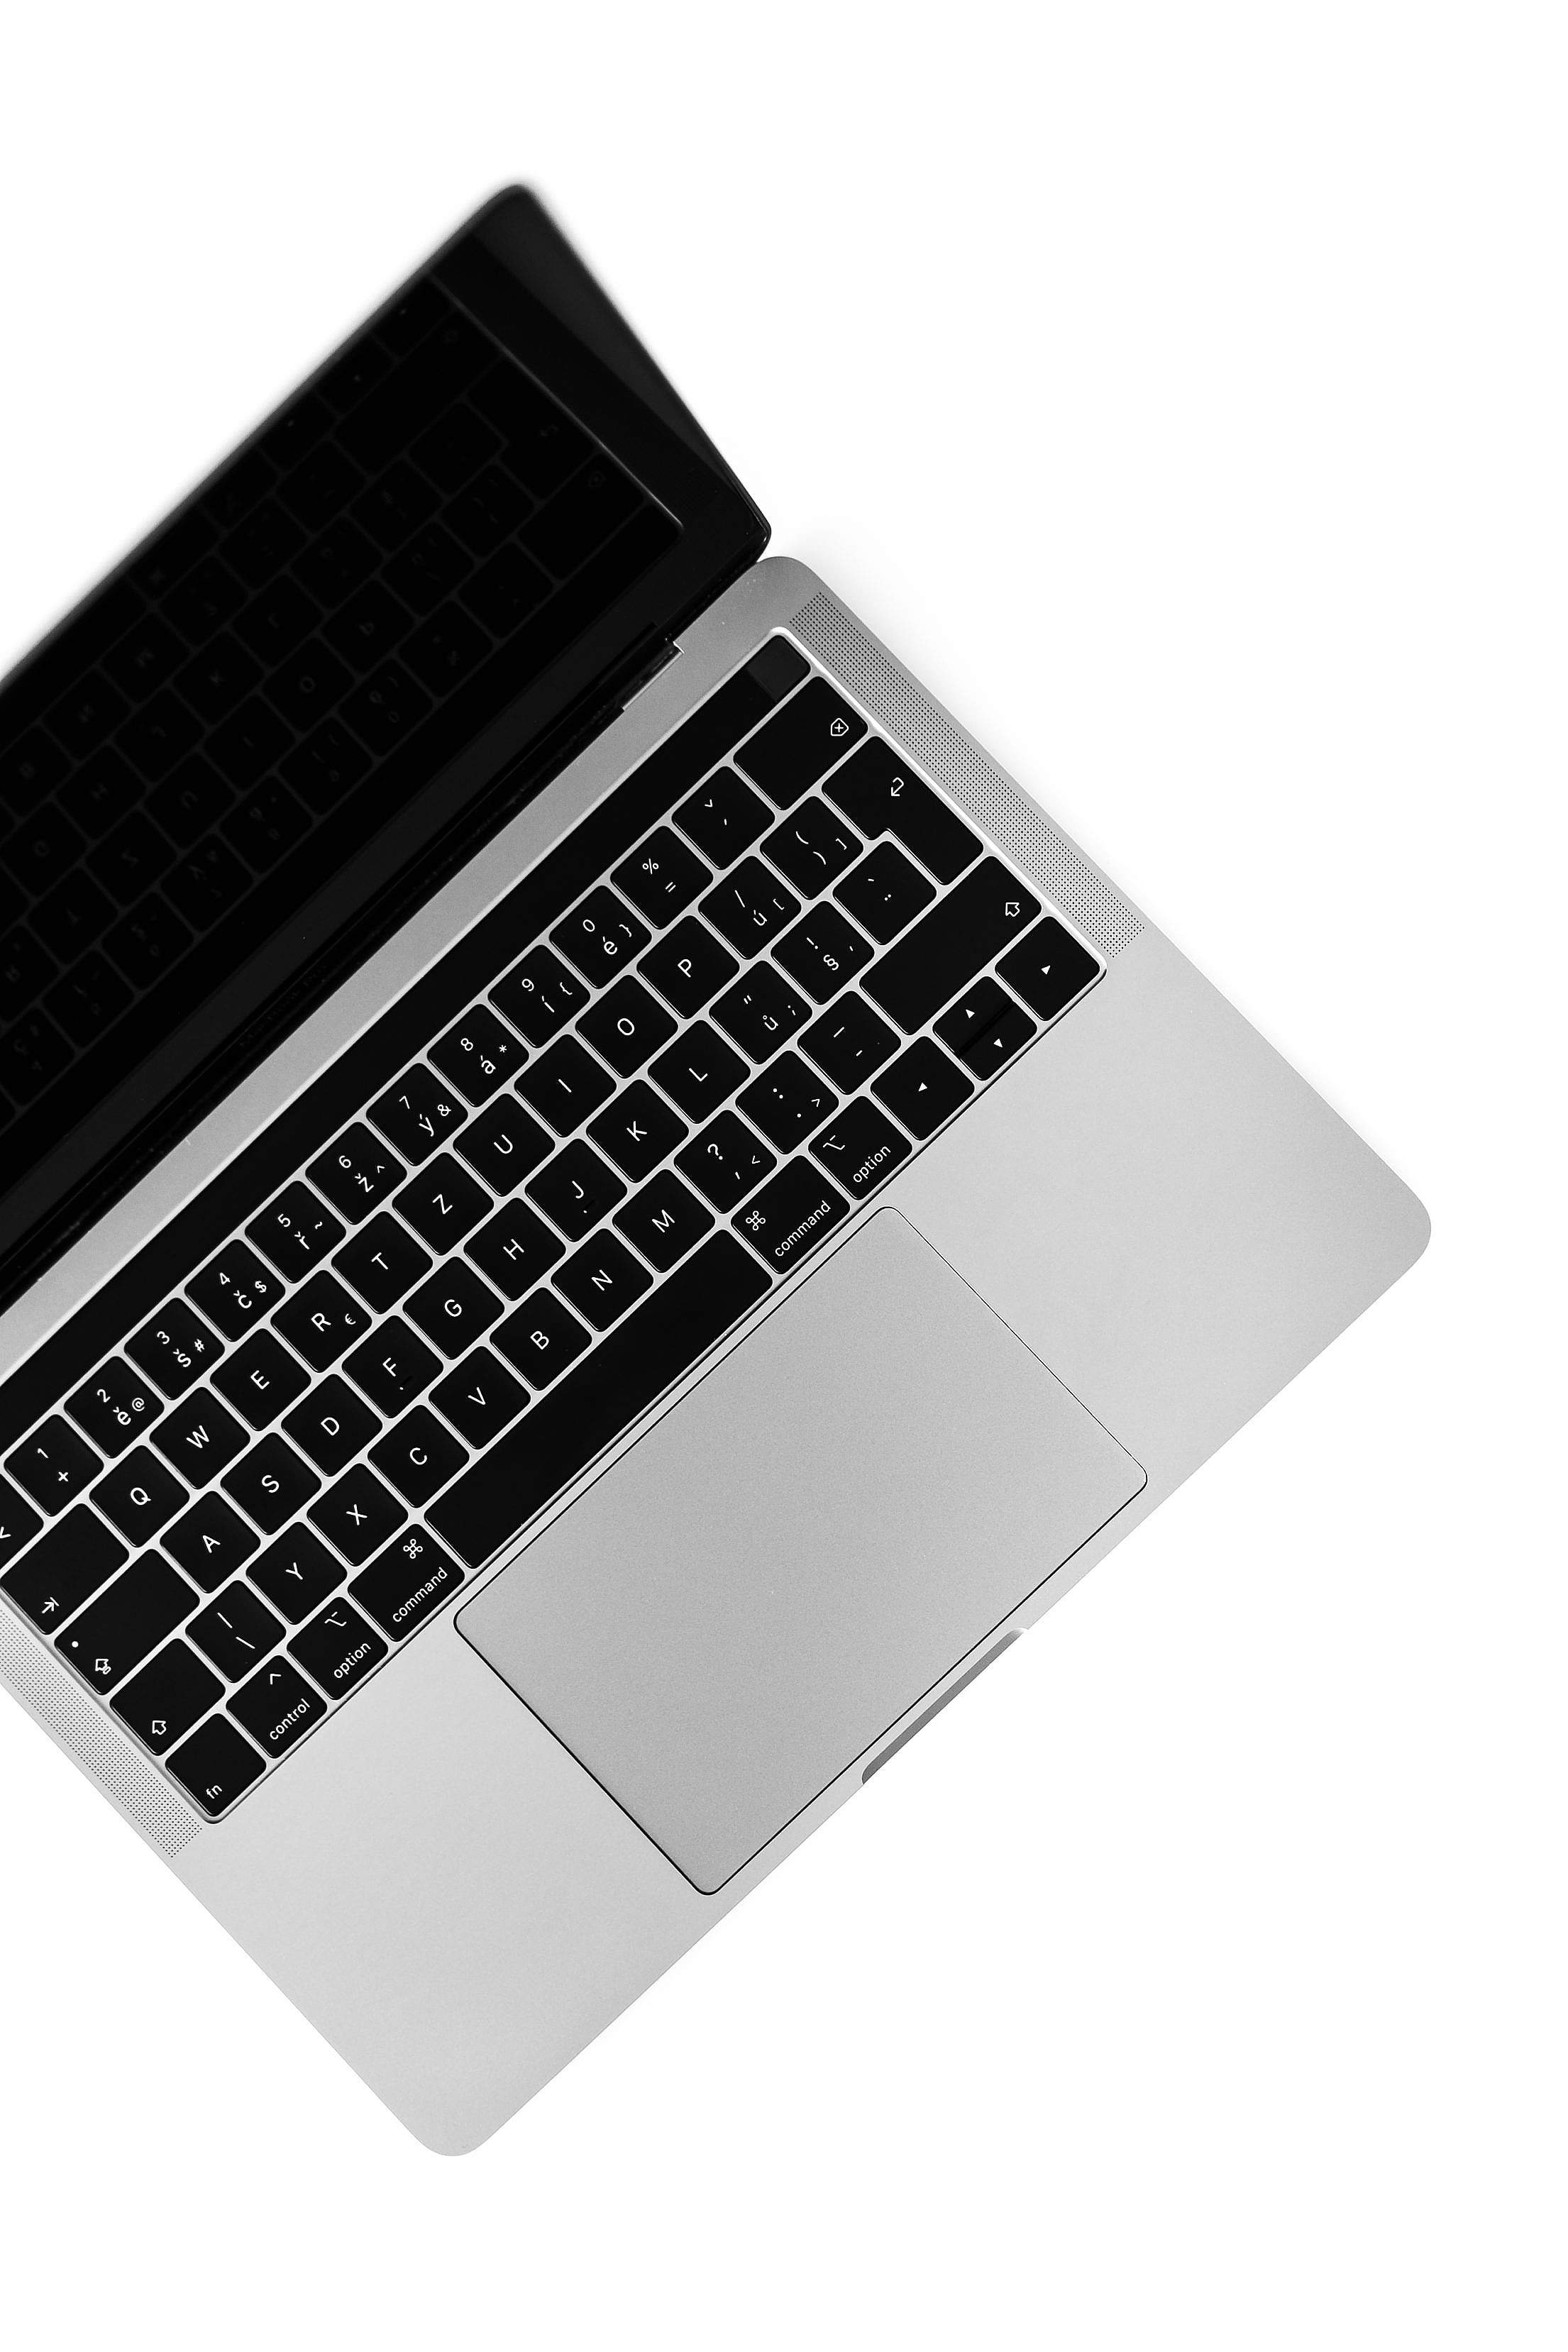 MacBook Pro Isolated on a White Background Free Stock Photo